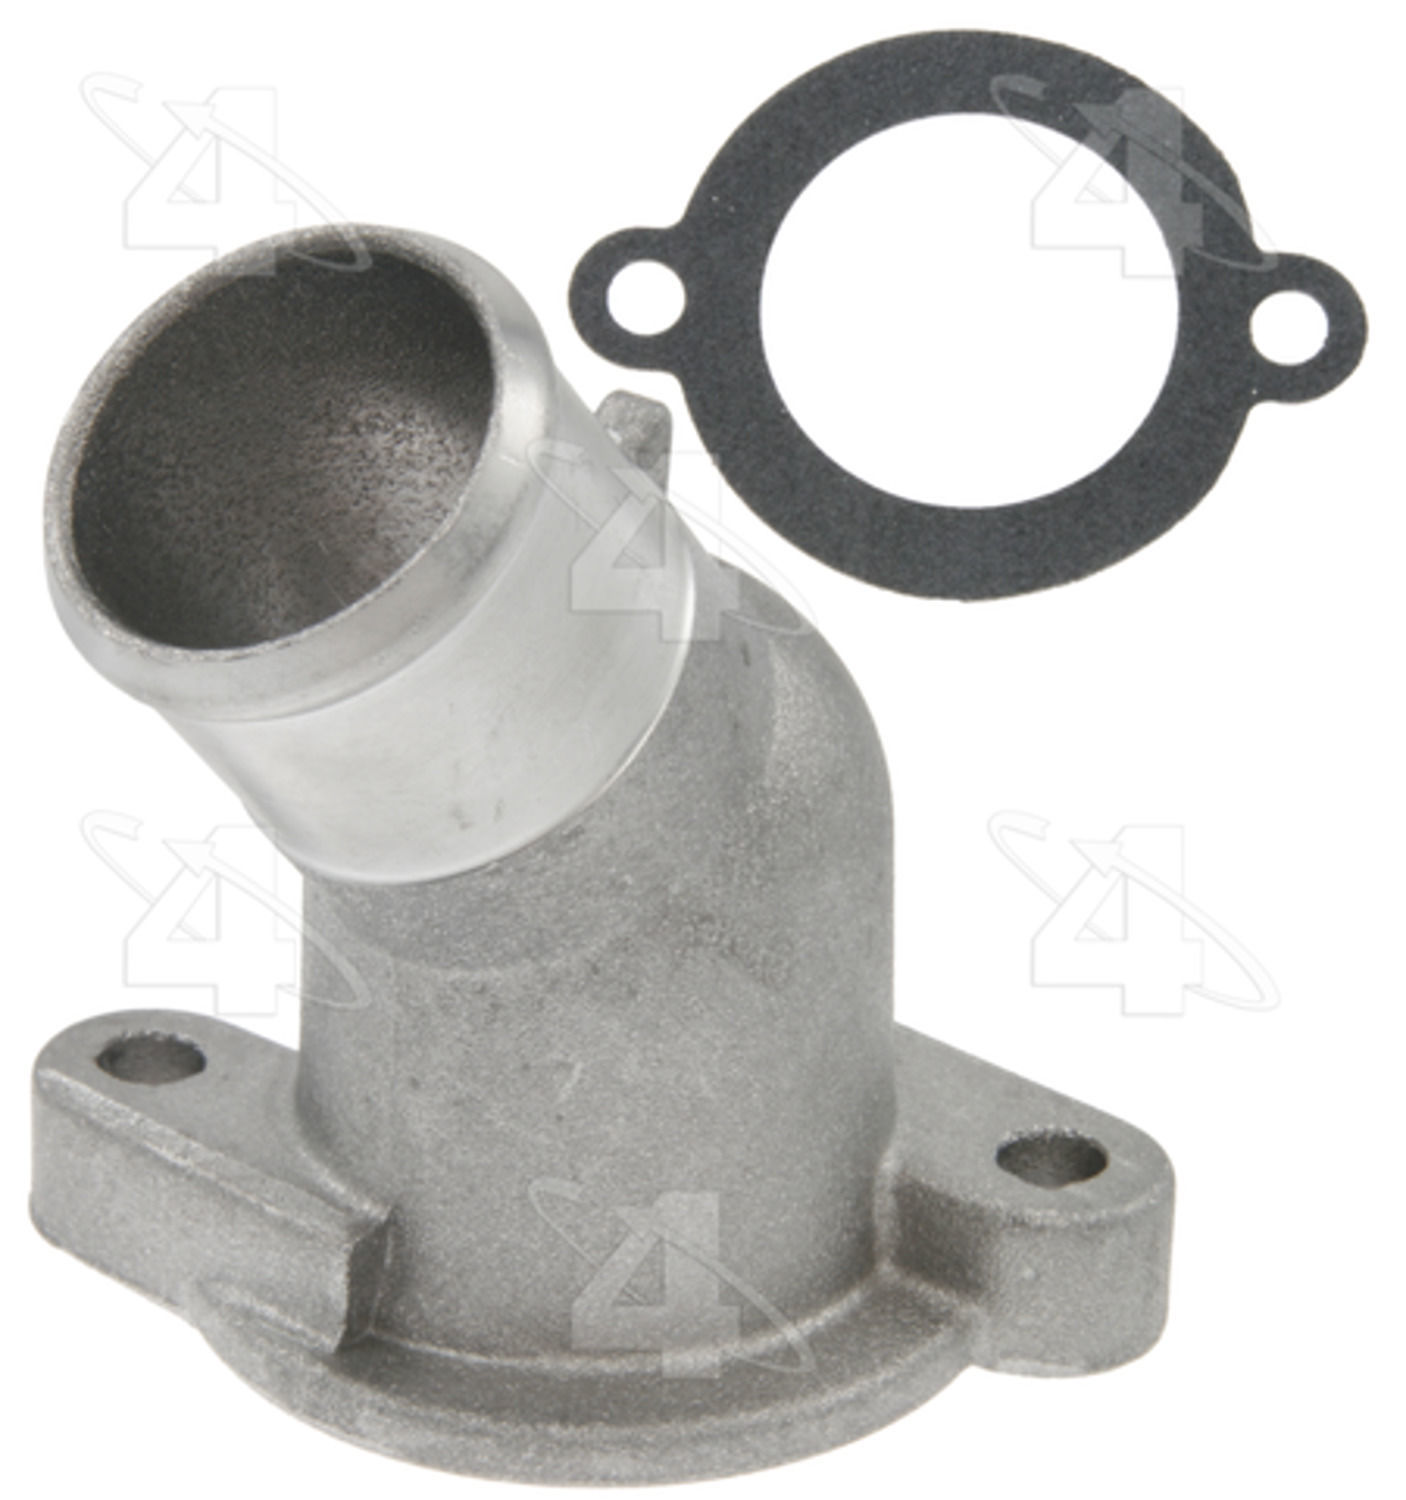 Ford Ranger Thermostat Housing And Water Outlet From Best Value Auto 1998 Mazda B2500 Location 2003